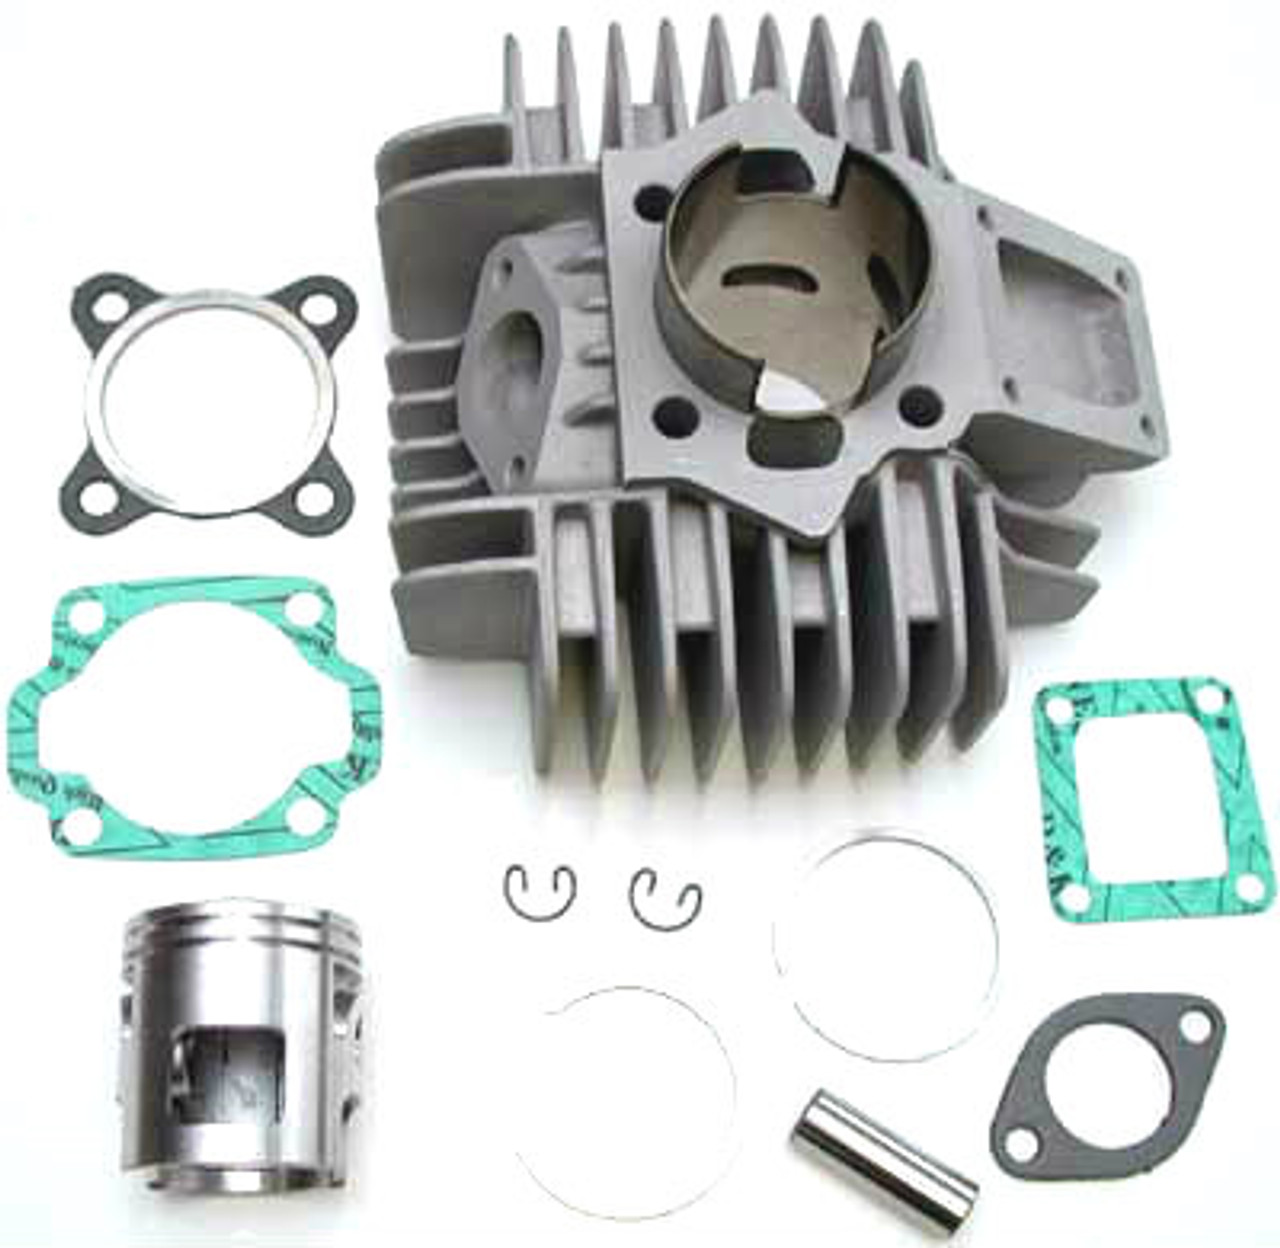 Tomos A35 70cc Cylinder Kit, 44mm